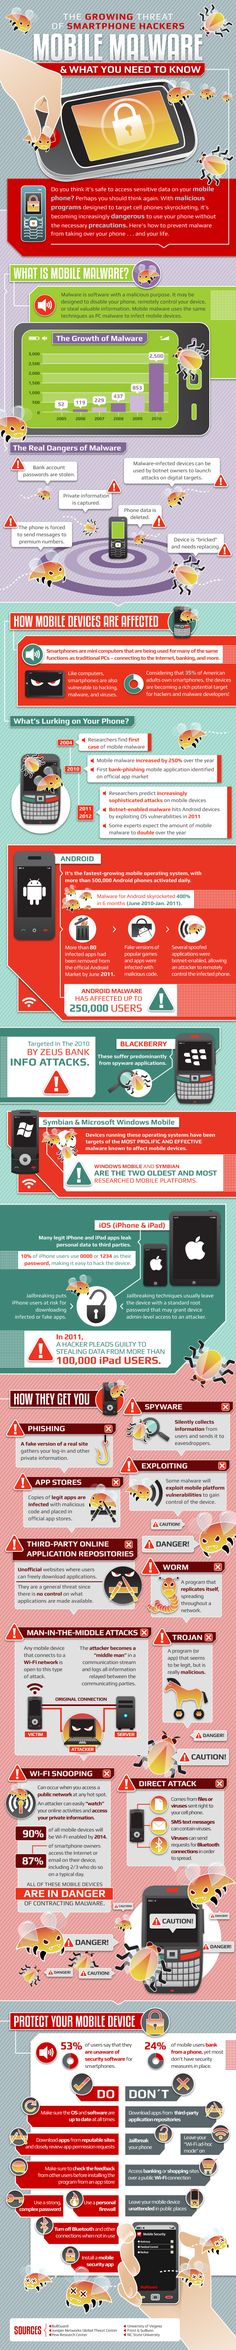 The growing Threat of Smartphone Hackers - Mobile Malware & what you need to know Infographic 2011 Mobile Security, Security Tips, Online Security, Web Security, Computer Technology, Computer Science, Computer Tips, Computer Programming, Energy Technology